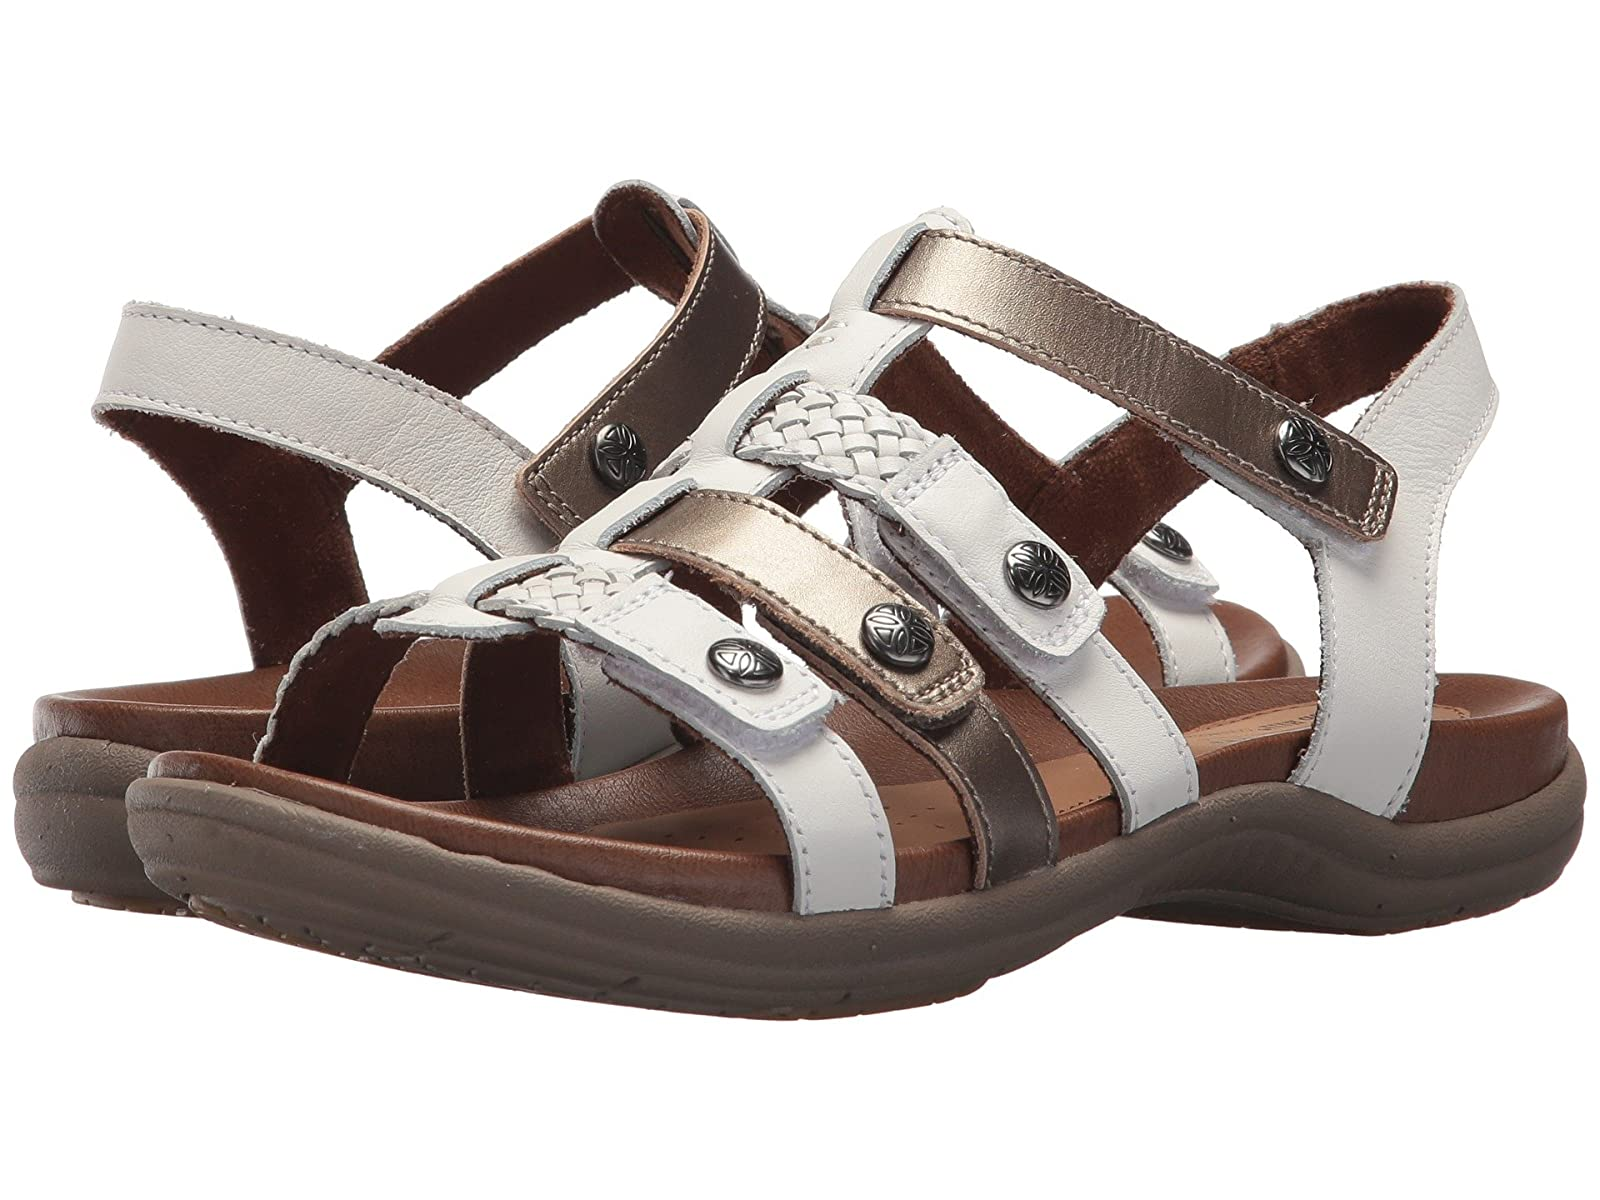 Rockport Cobb Hill Collection Cobb Hill Rubey T StrapCheap and distinctive eye-catching shoes